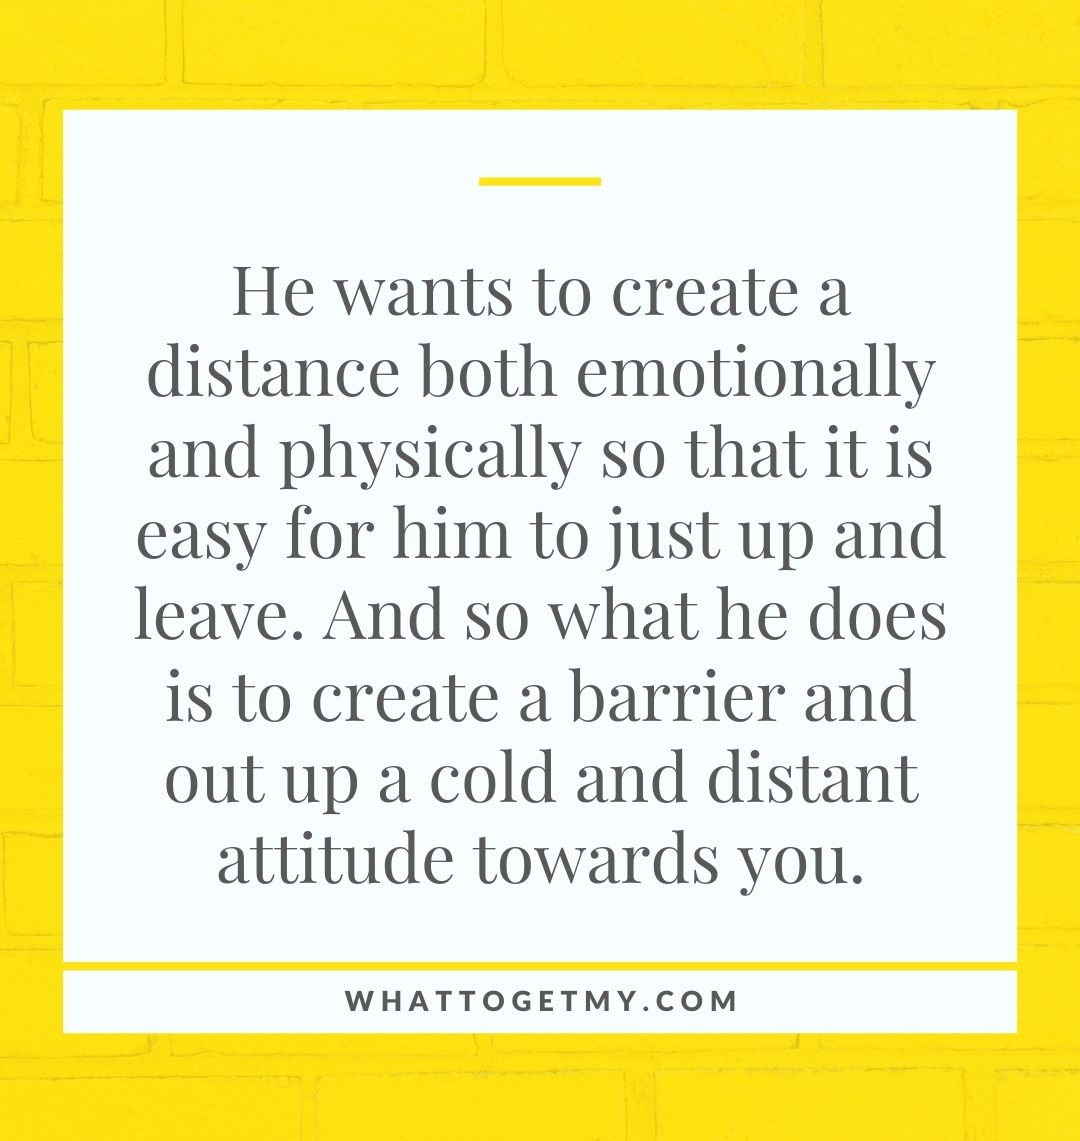 He wants to create a distance both emotionally and physically so that it is easy for him to just up and leave. And so what he does is to create a barrier and out up a cold and distant attitude towards you.